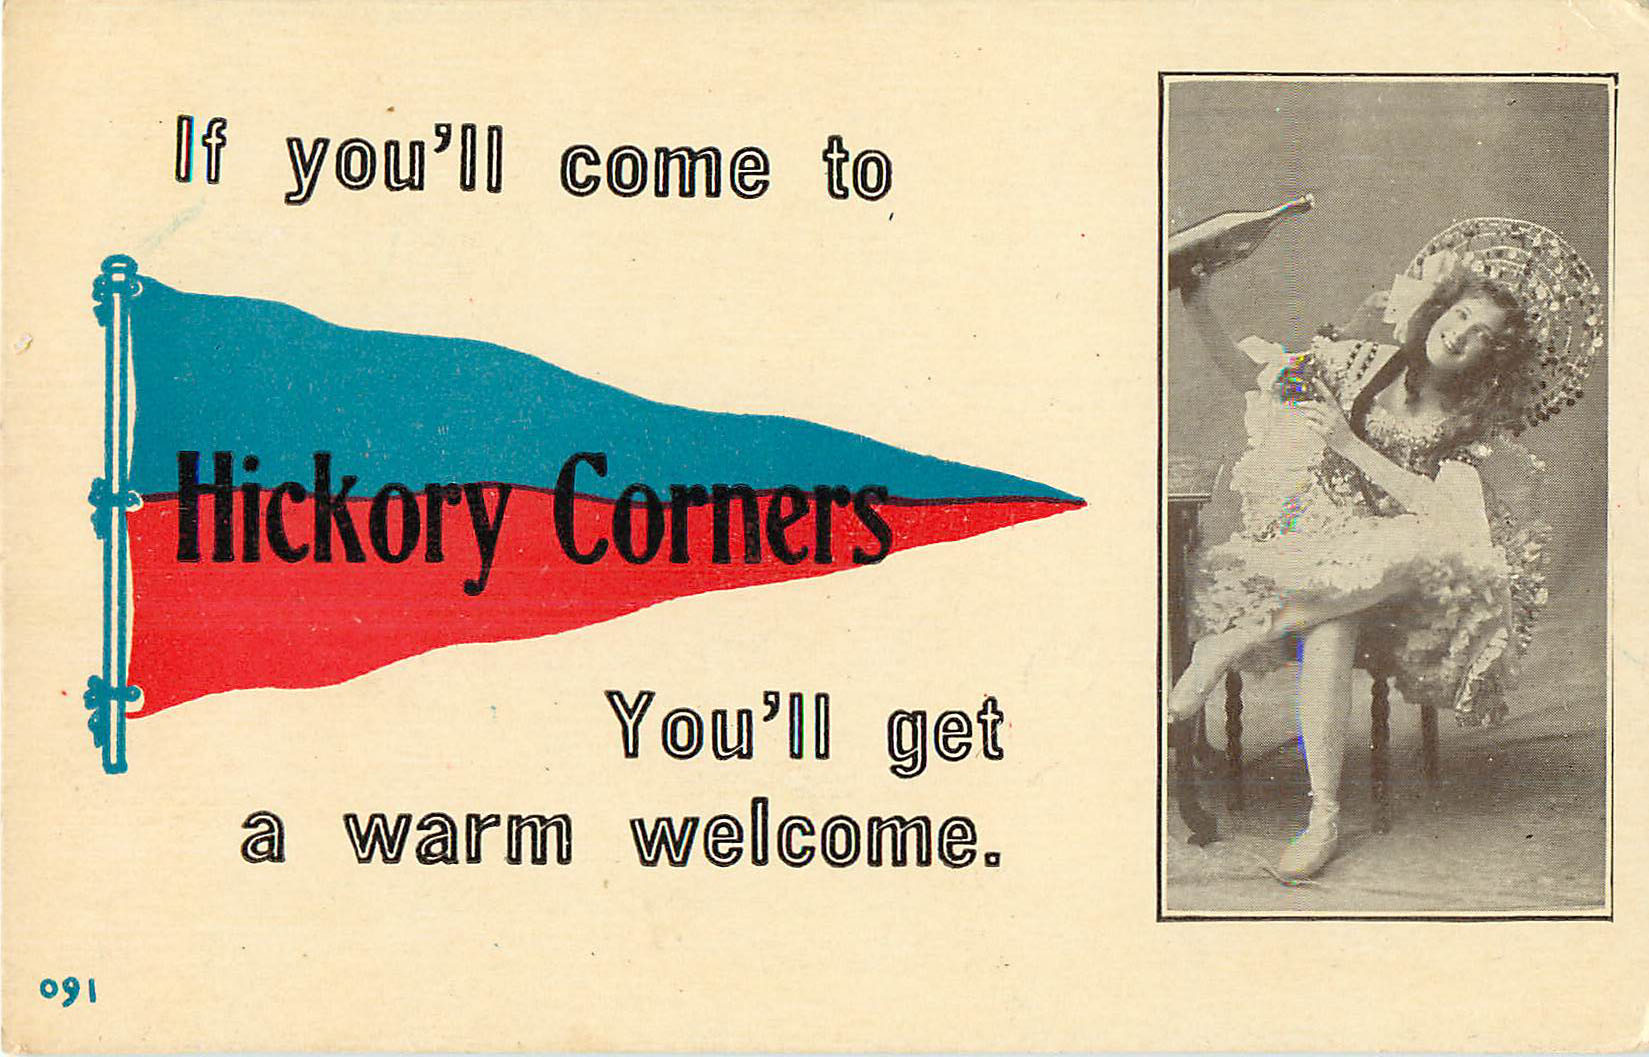 If you'll come to Hickory Corners - Pennant Postcard